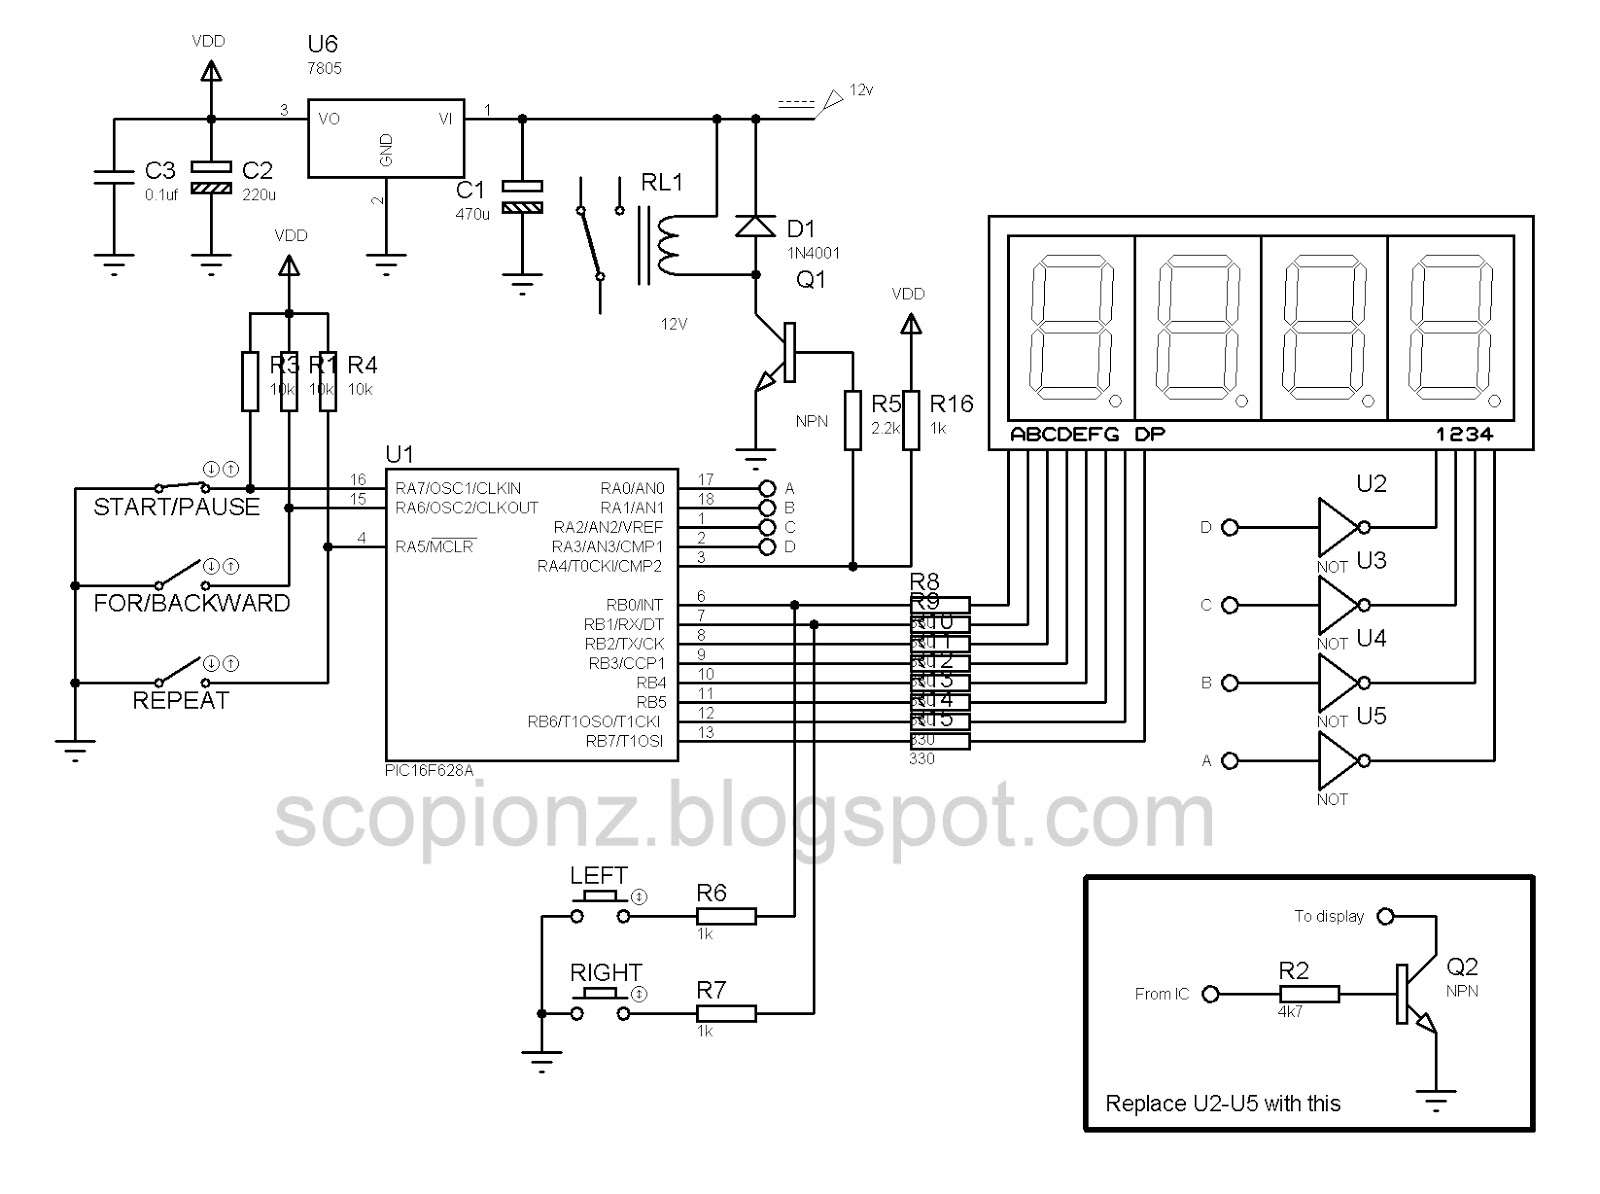 10 band i2c graphic equalizer circuit 16f628 tea6360 scorpionz